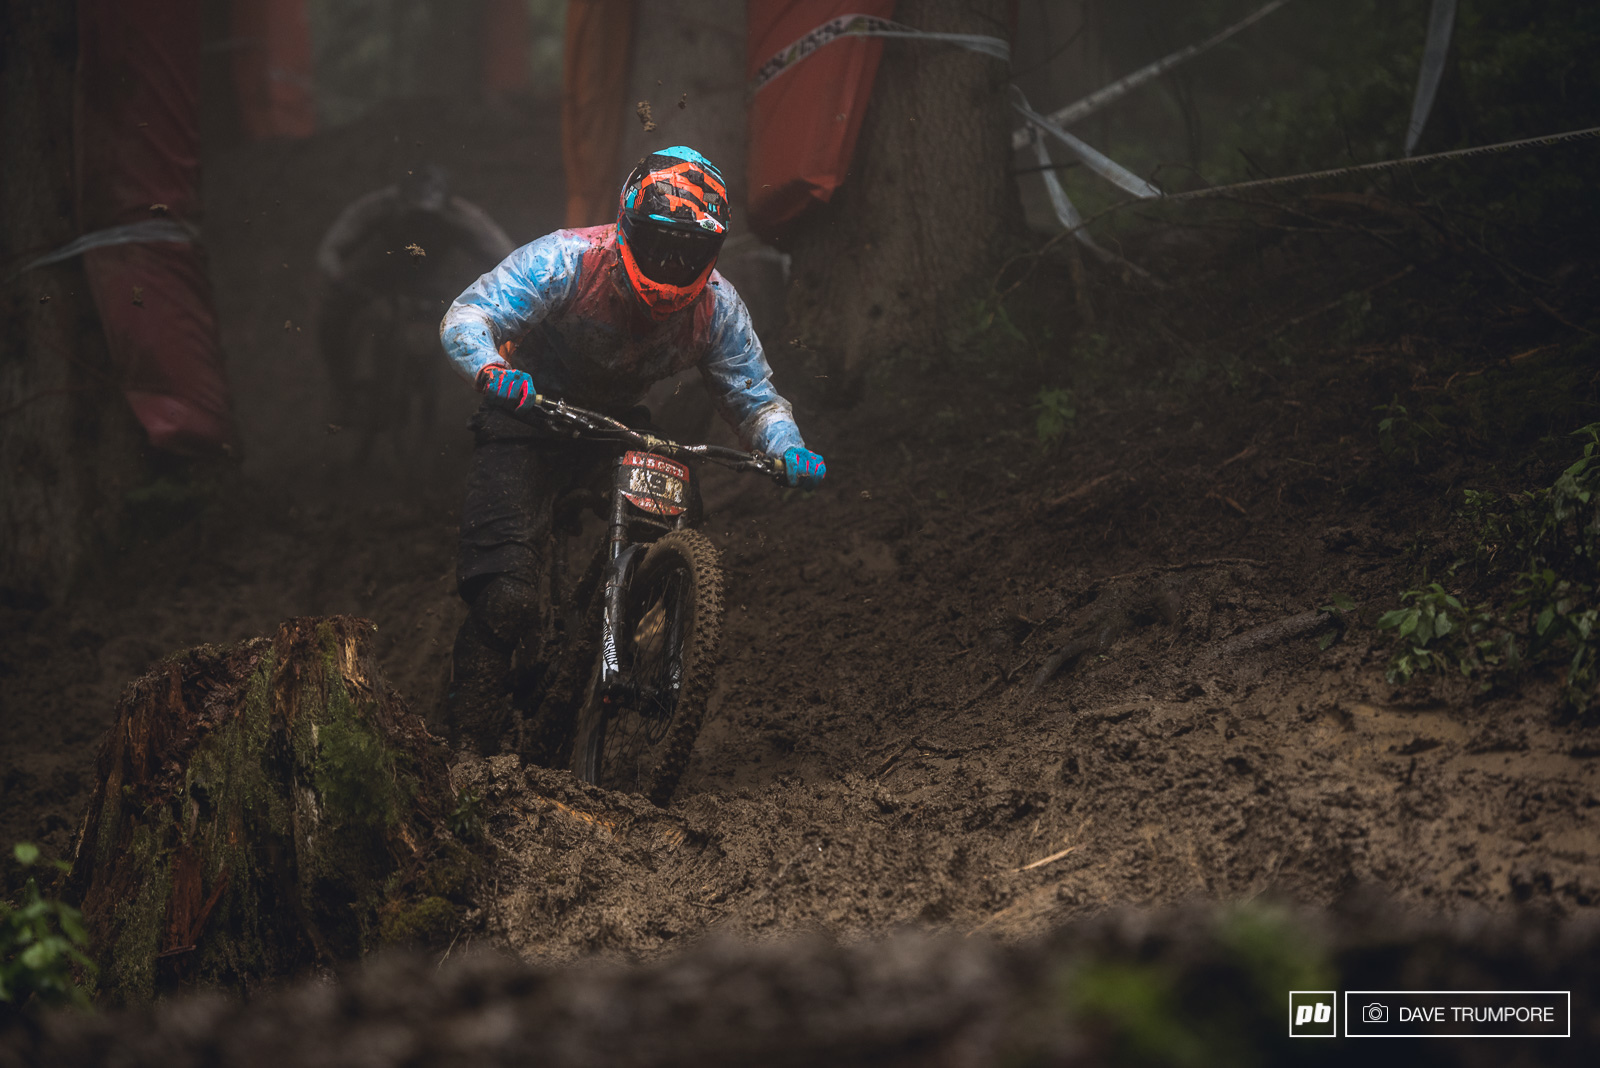 It s was good to see Rafael the younger of the Gutierrez brothers make the trip over from Colombia to mix it up in the French mud. He managed to qualify in the top 10 but a crash in the final ended his high hopes in the final.